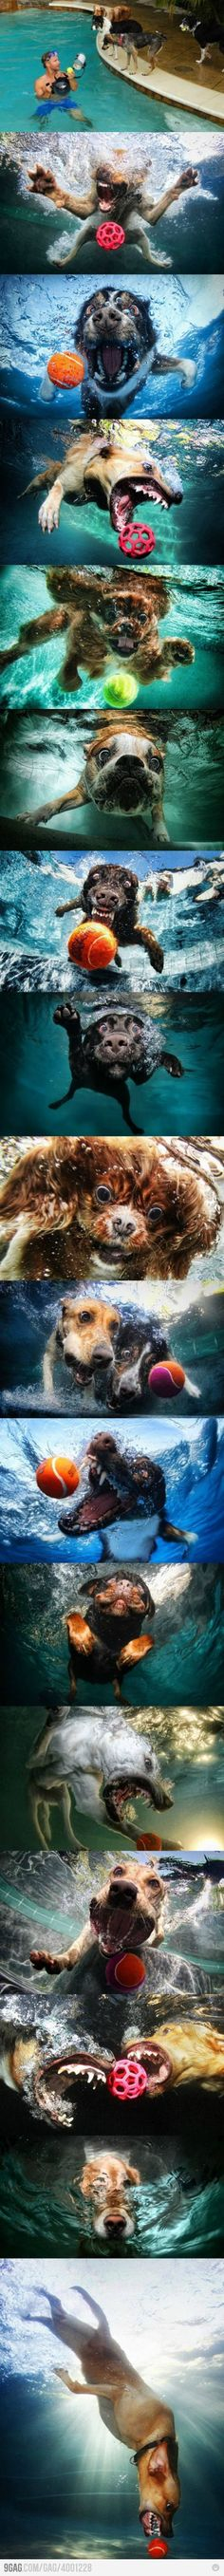 Underwater Dogs: photographs of dogs underwater by Seth Casteel Love My Dog, Puppy Love, Funny Dogs, Cute Dogs, Funny Animals, Cute Animals, Funny Fails, Scary Animals, Funny Humor